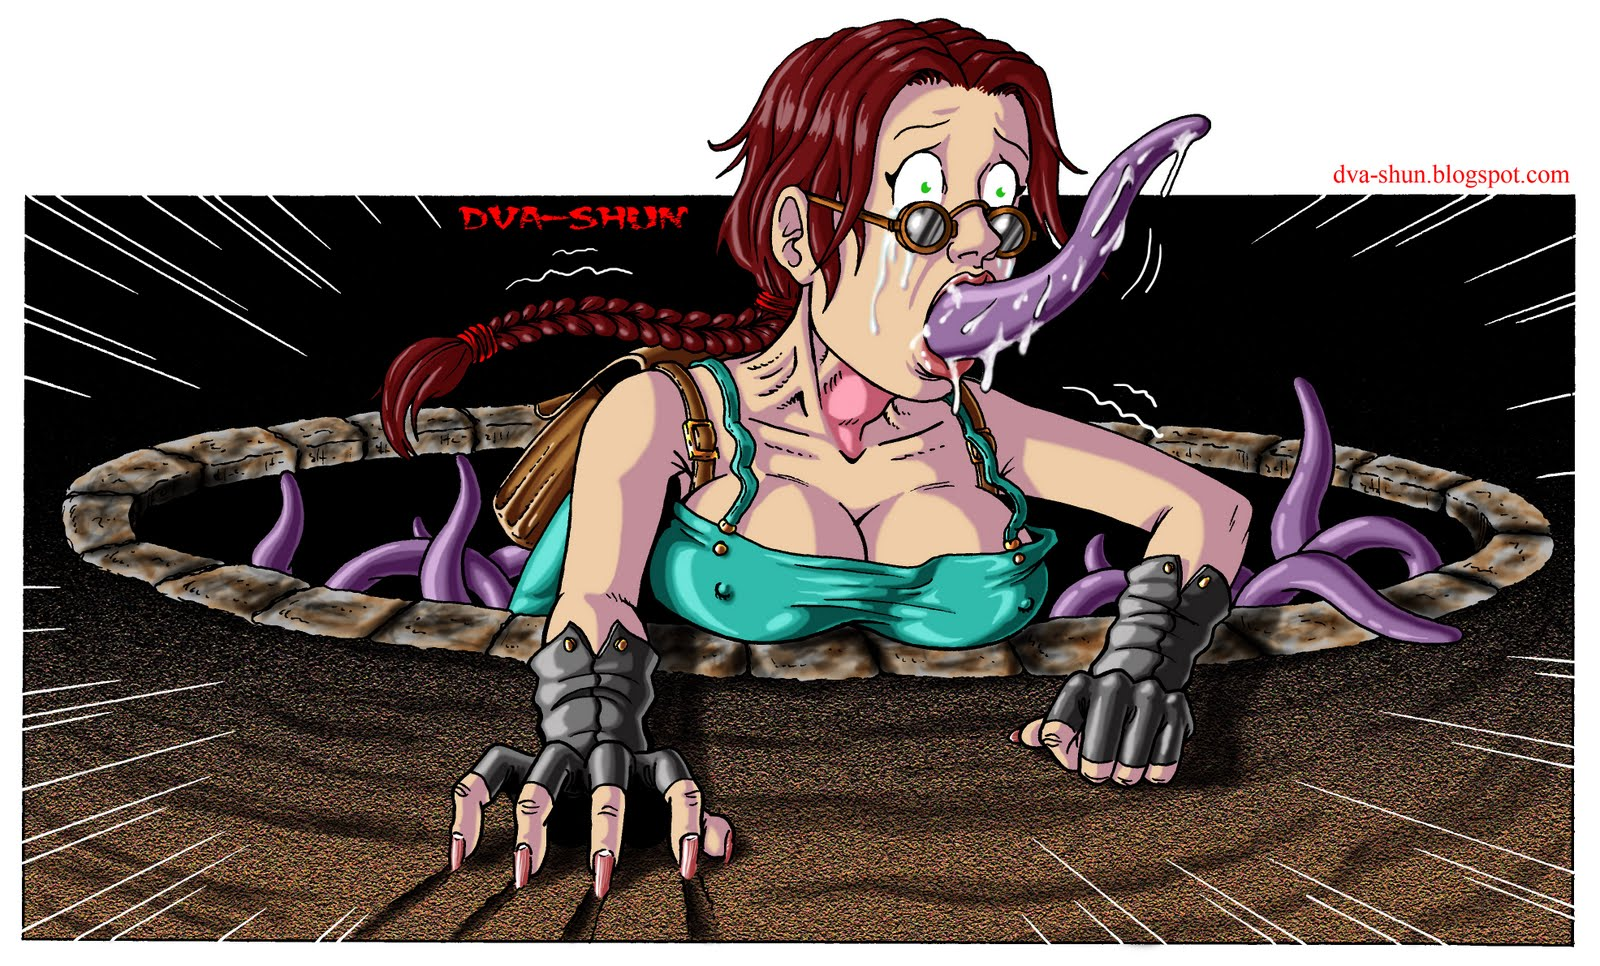 Tomb raider hentai pic tentacle cartoon vids